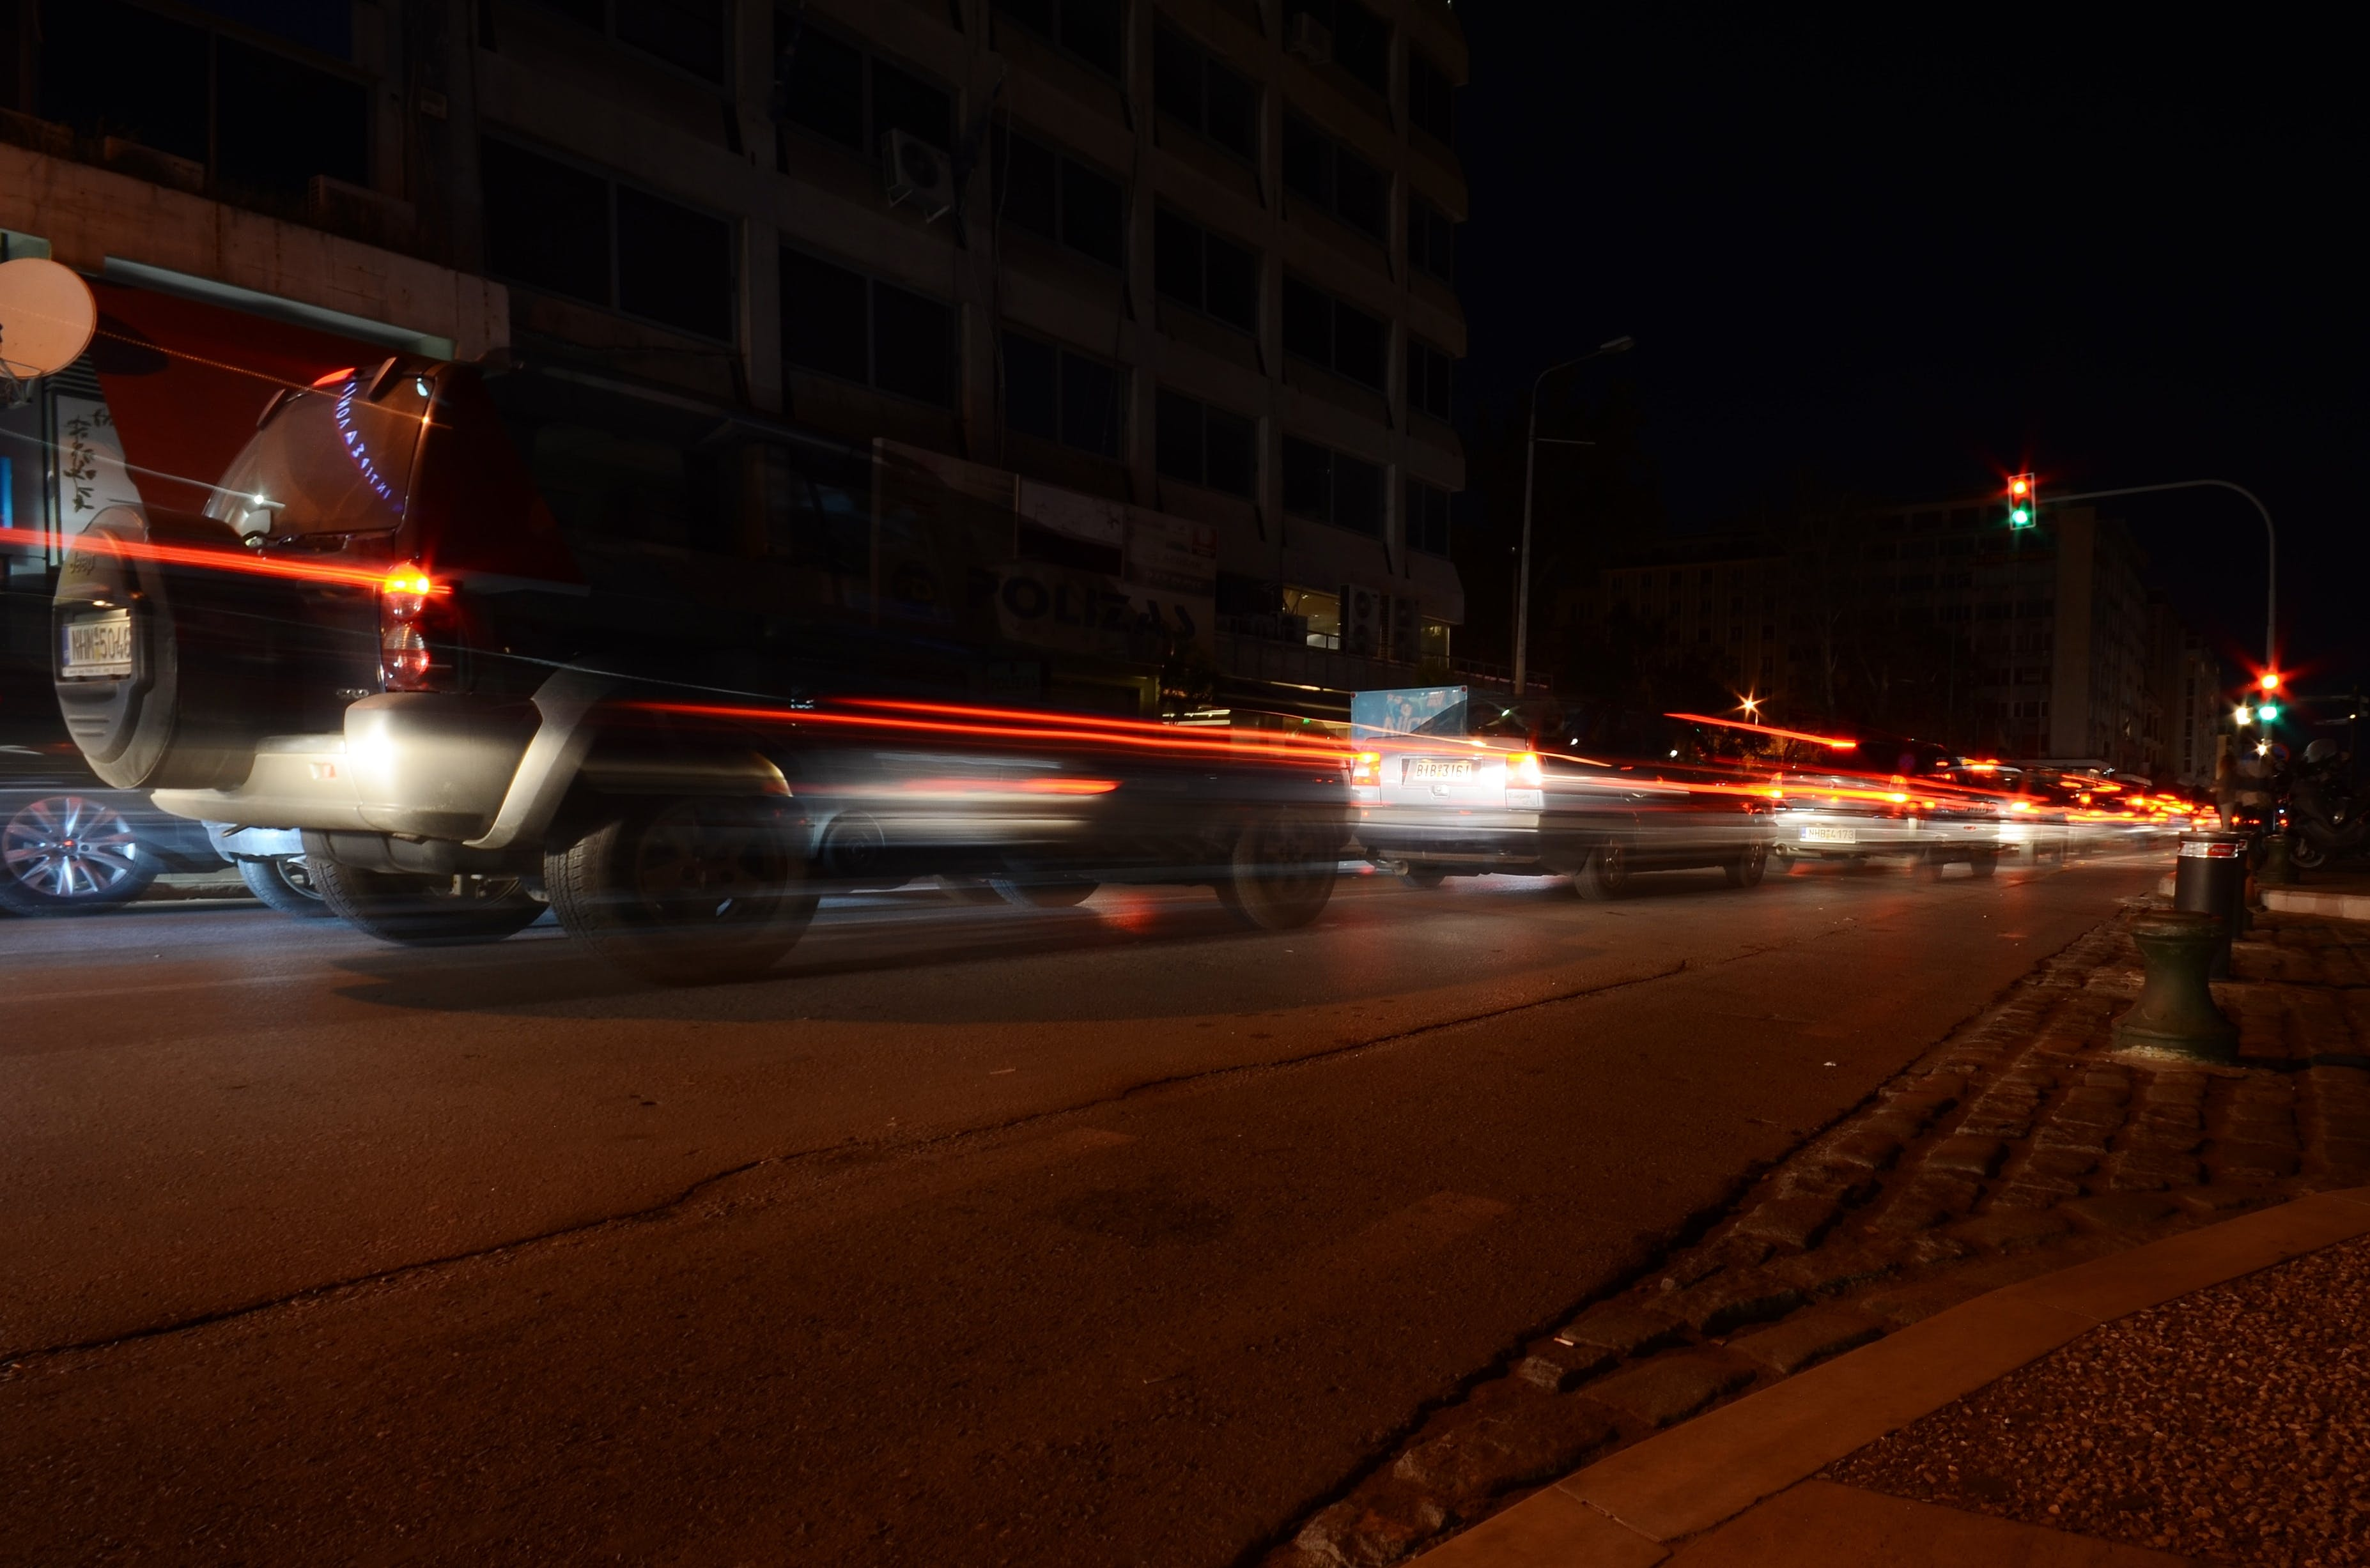 Timelapse Photography of Traveling Vehicles during Nighttime